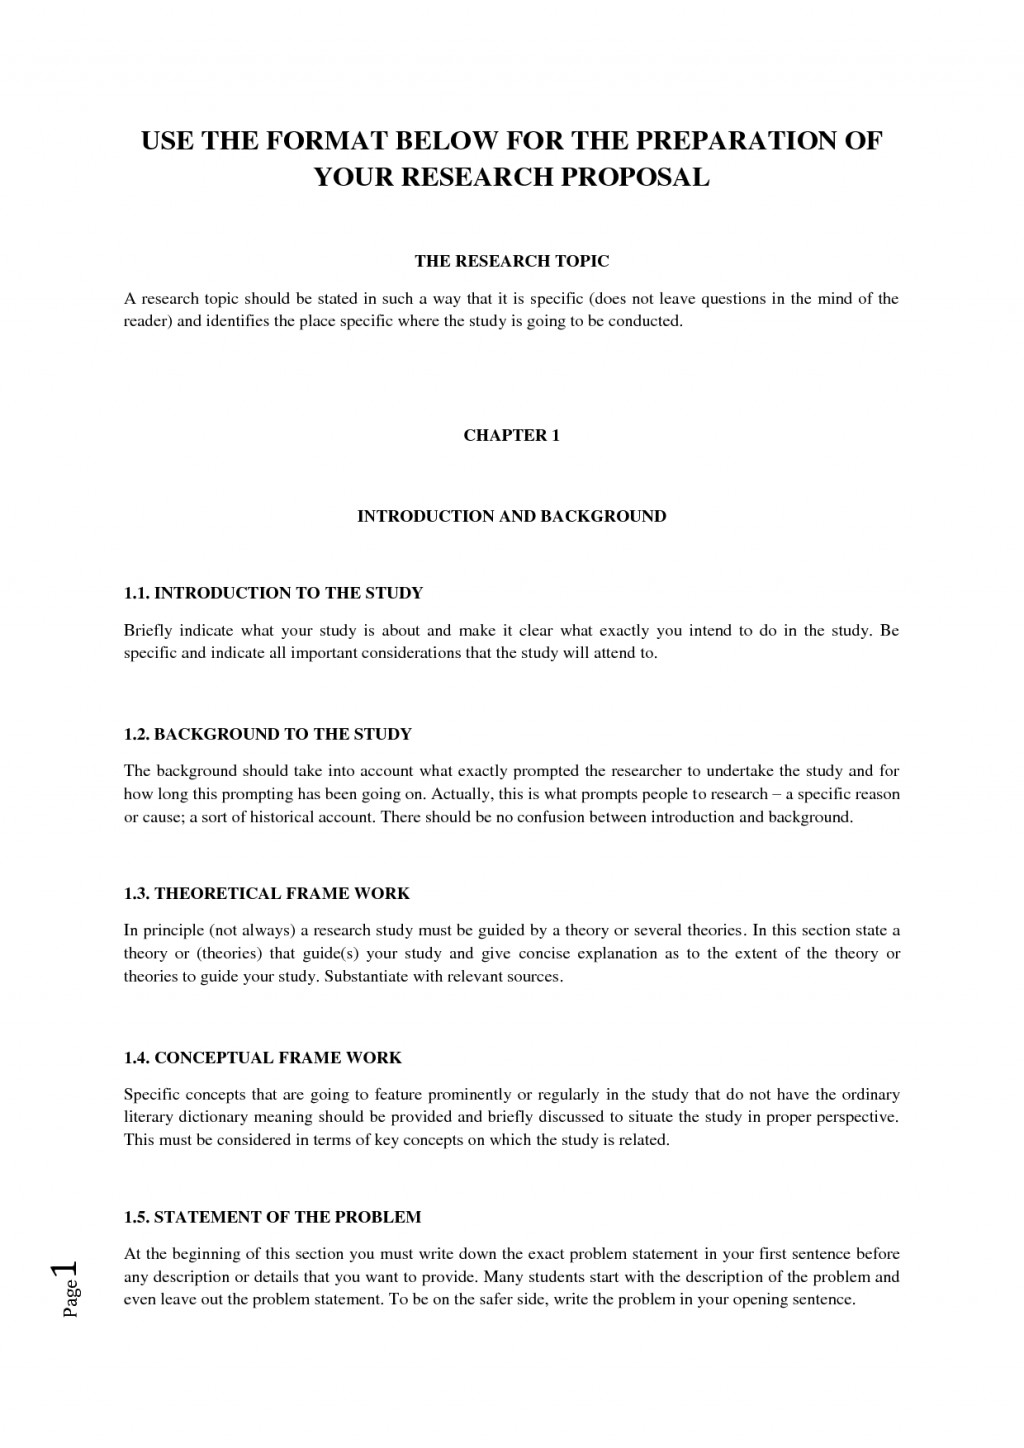 009 Research Paper How To Write Scientific Outline Sample Of Proposal Template 59708 Wondrous A Science Large